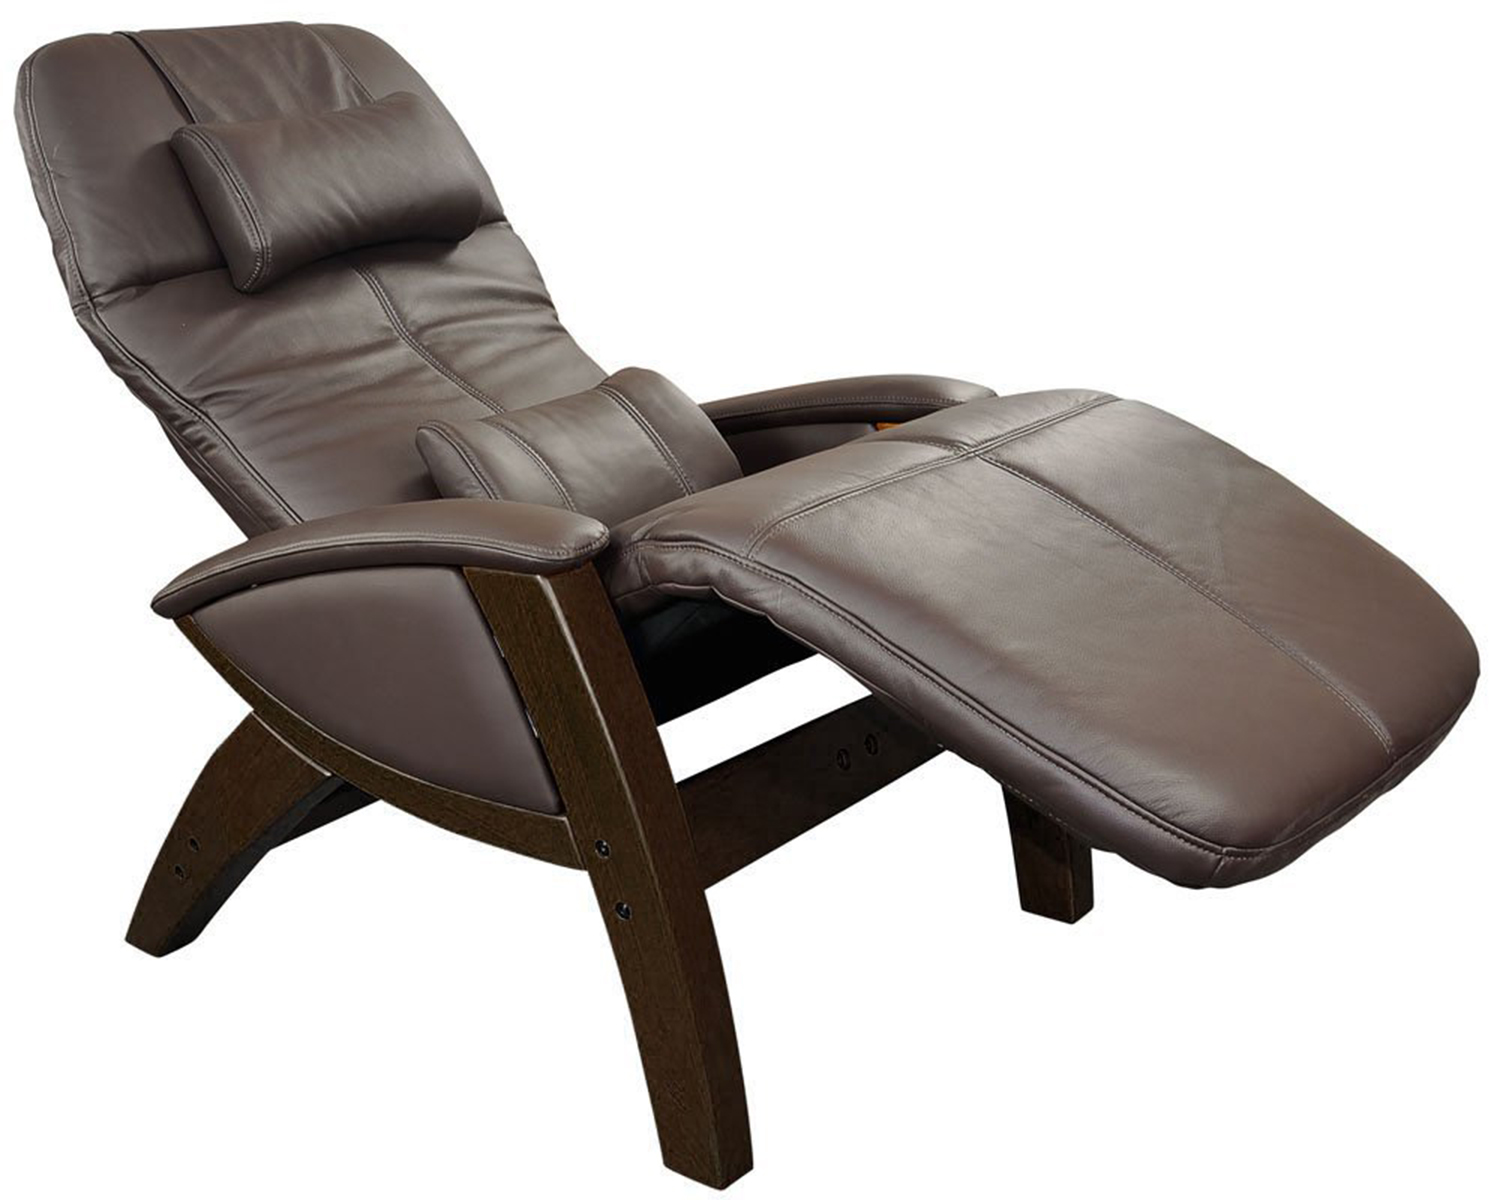 Svago SV400  SV405 Lusso Zero Gravity Recliner Chair